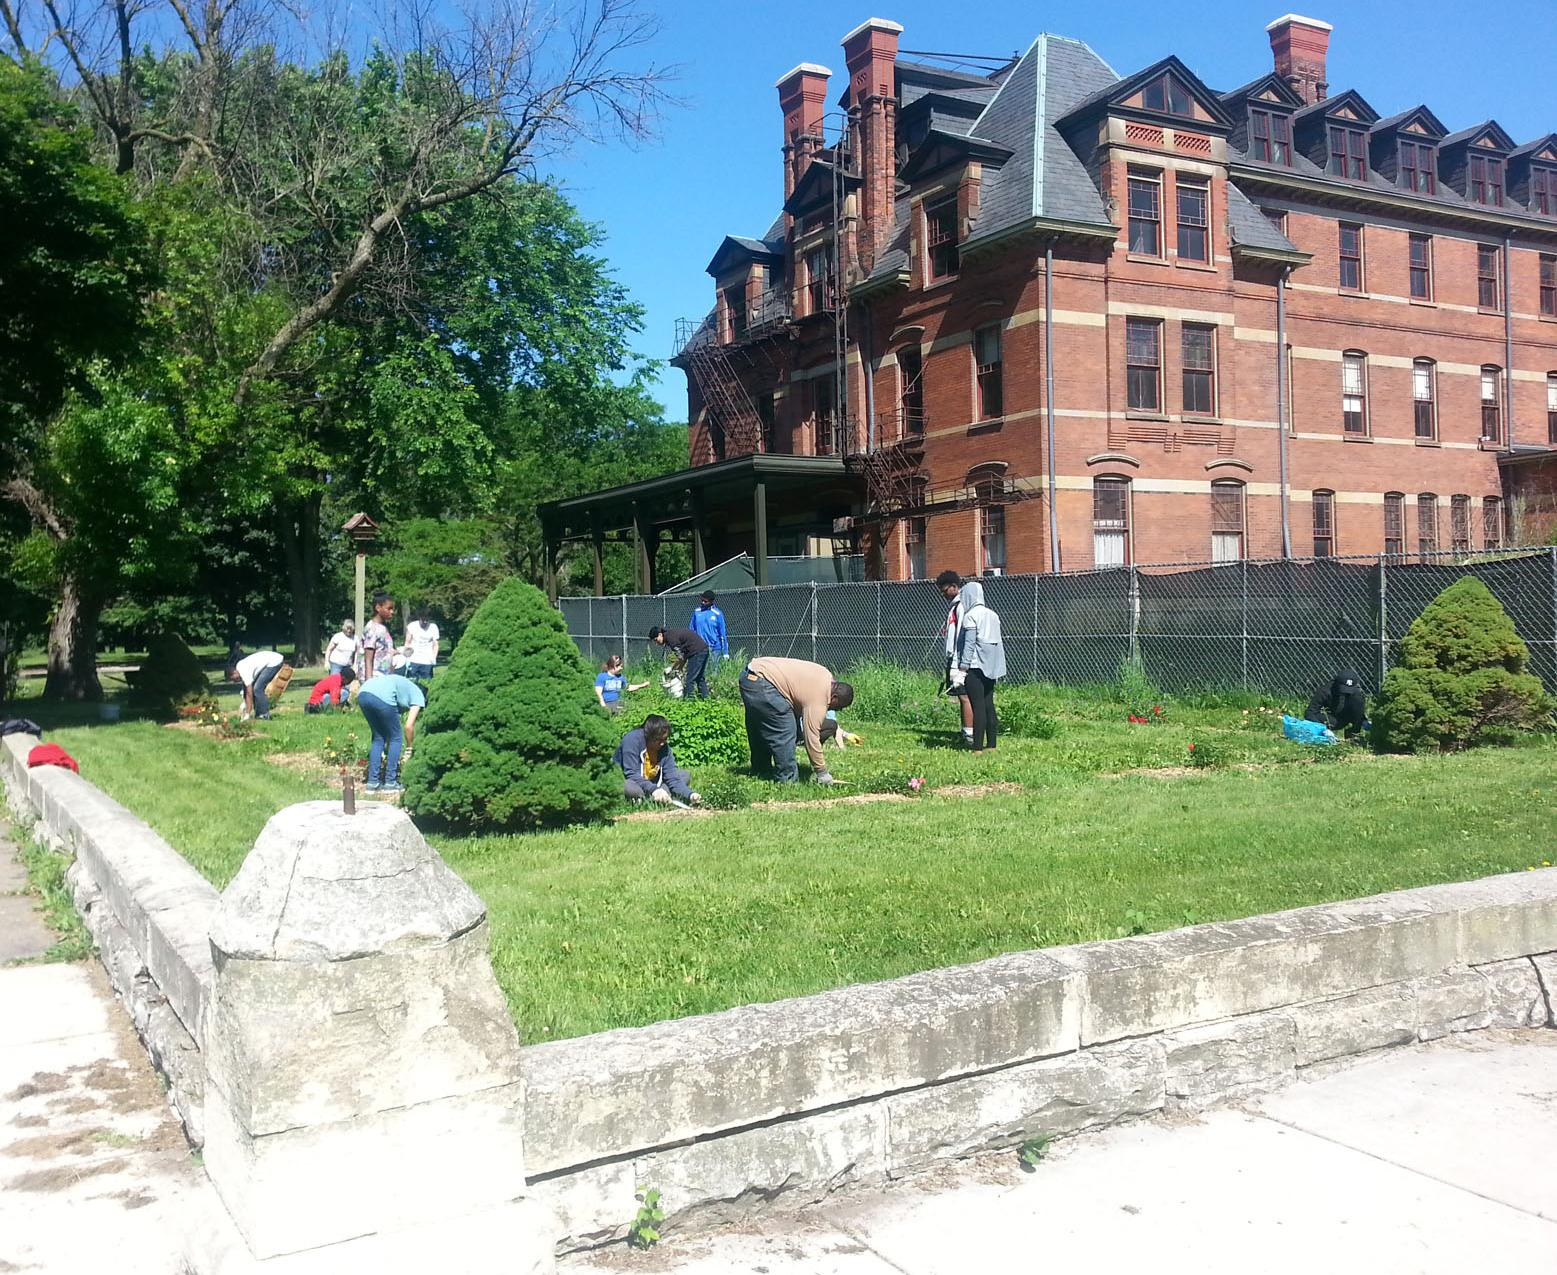 Brooks students weeding the gardens of the Florence Hotel, a part of the Pullman National Historic Park.